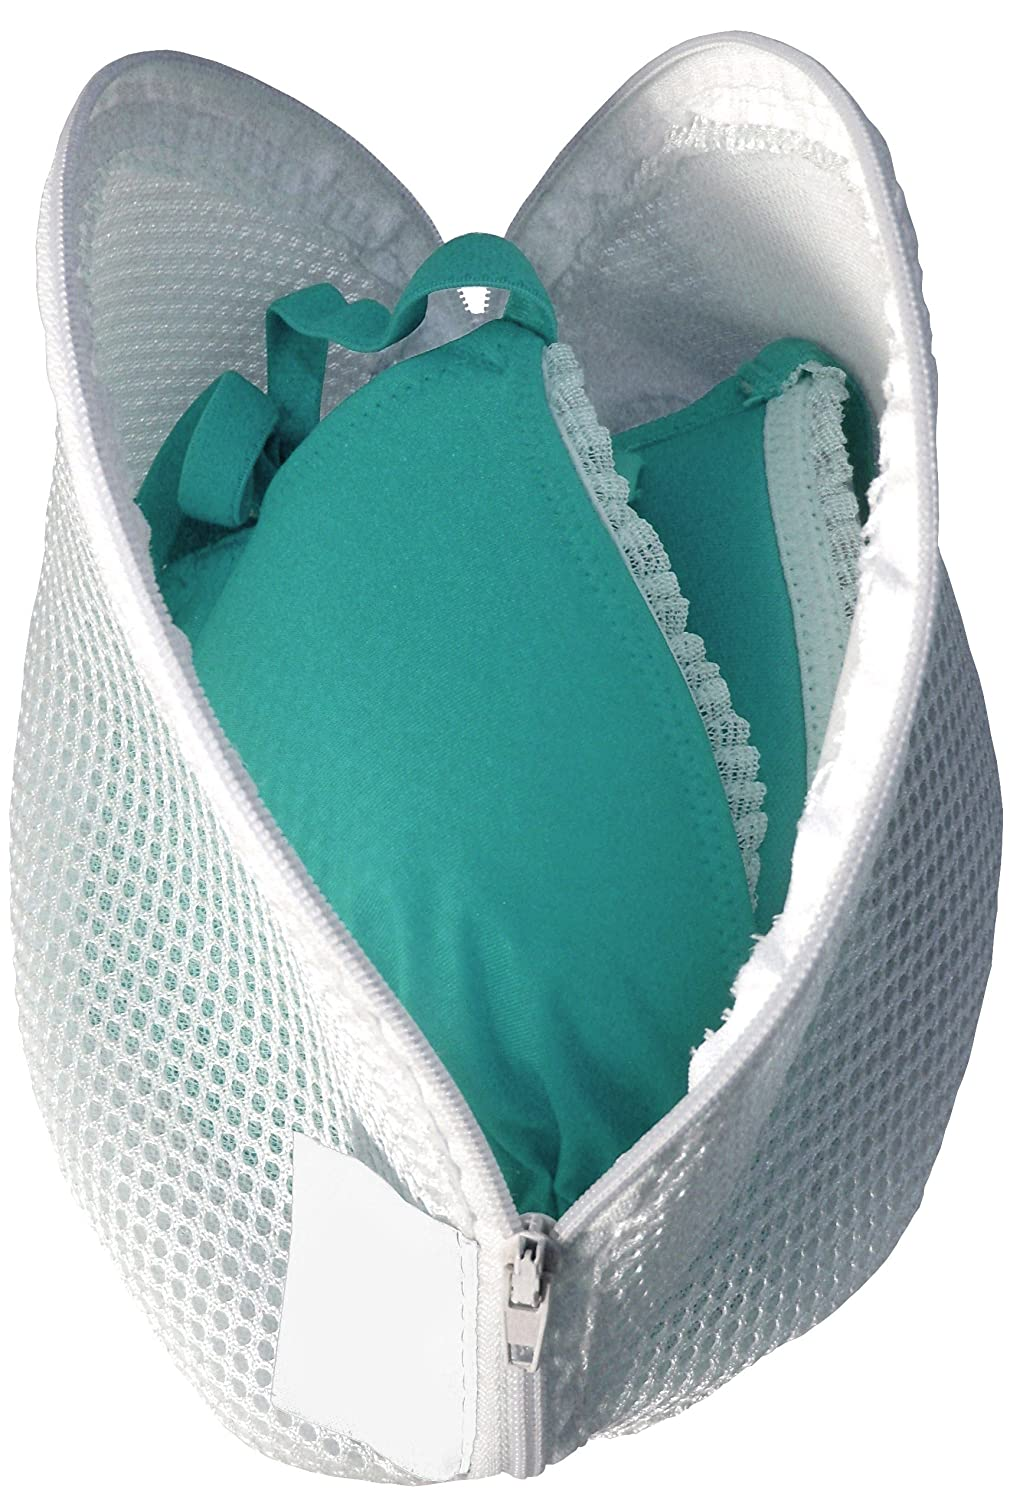 Bra Net Wash Bag D to GG CUP . Padded to protect Bras in the washing machine